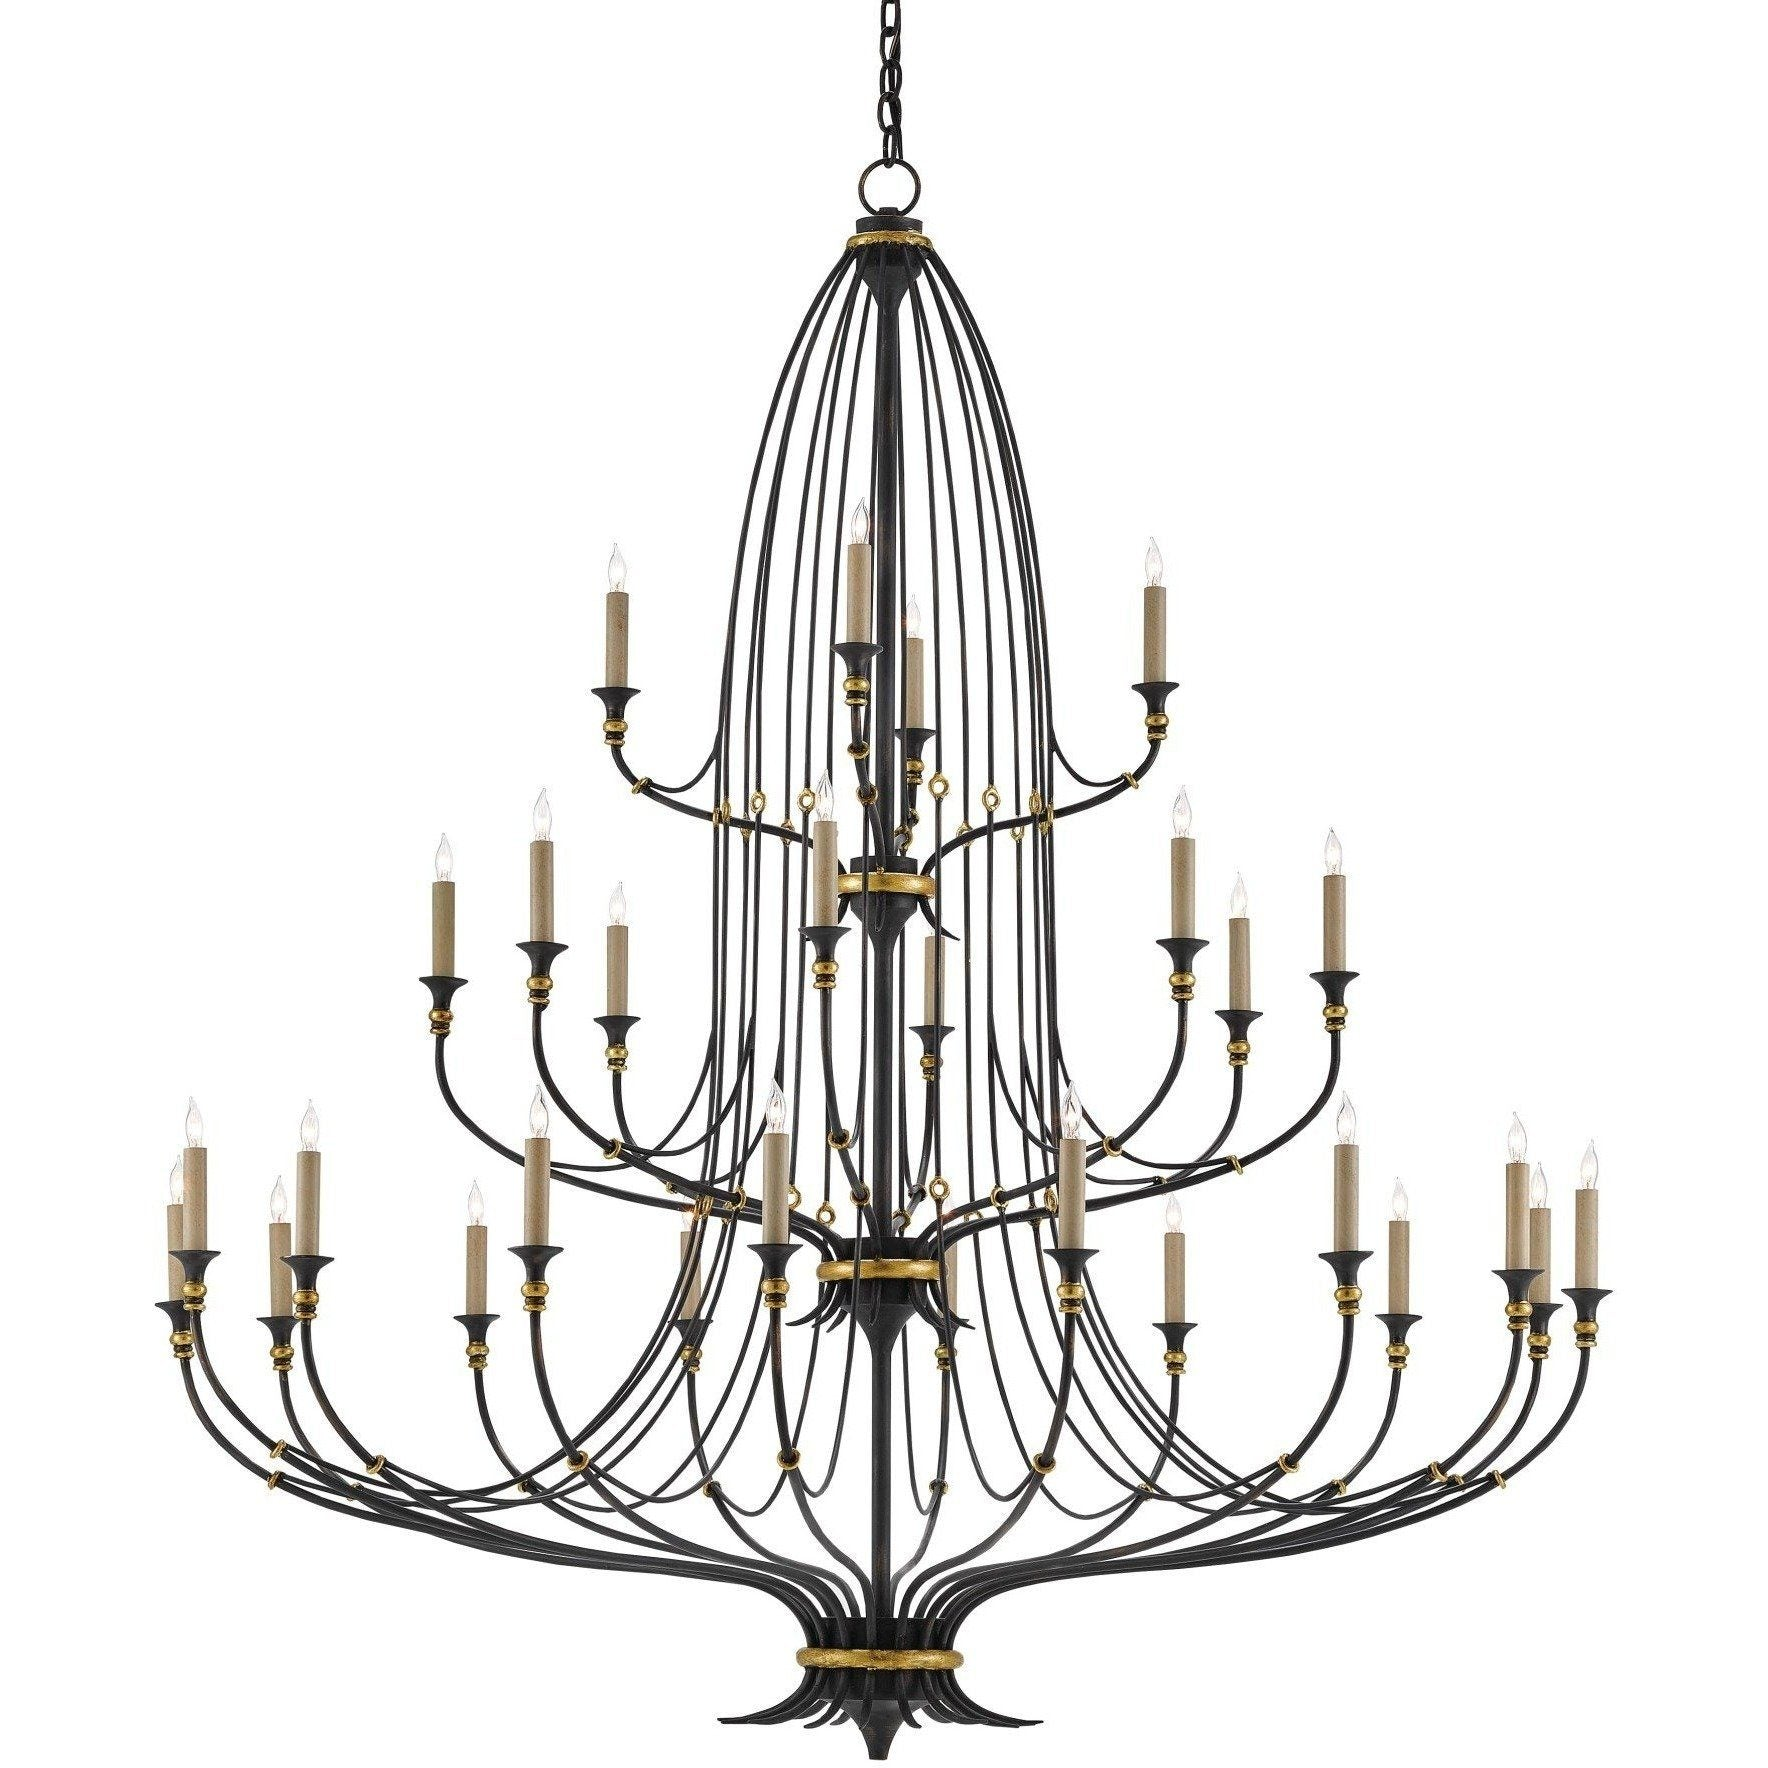 Currey and Company Folgate Chandelier 9000-0213 - LOVECUP